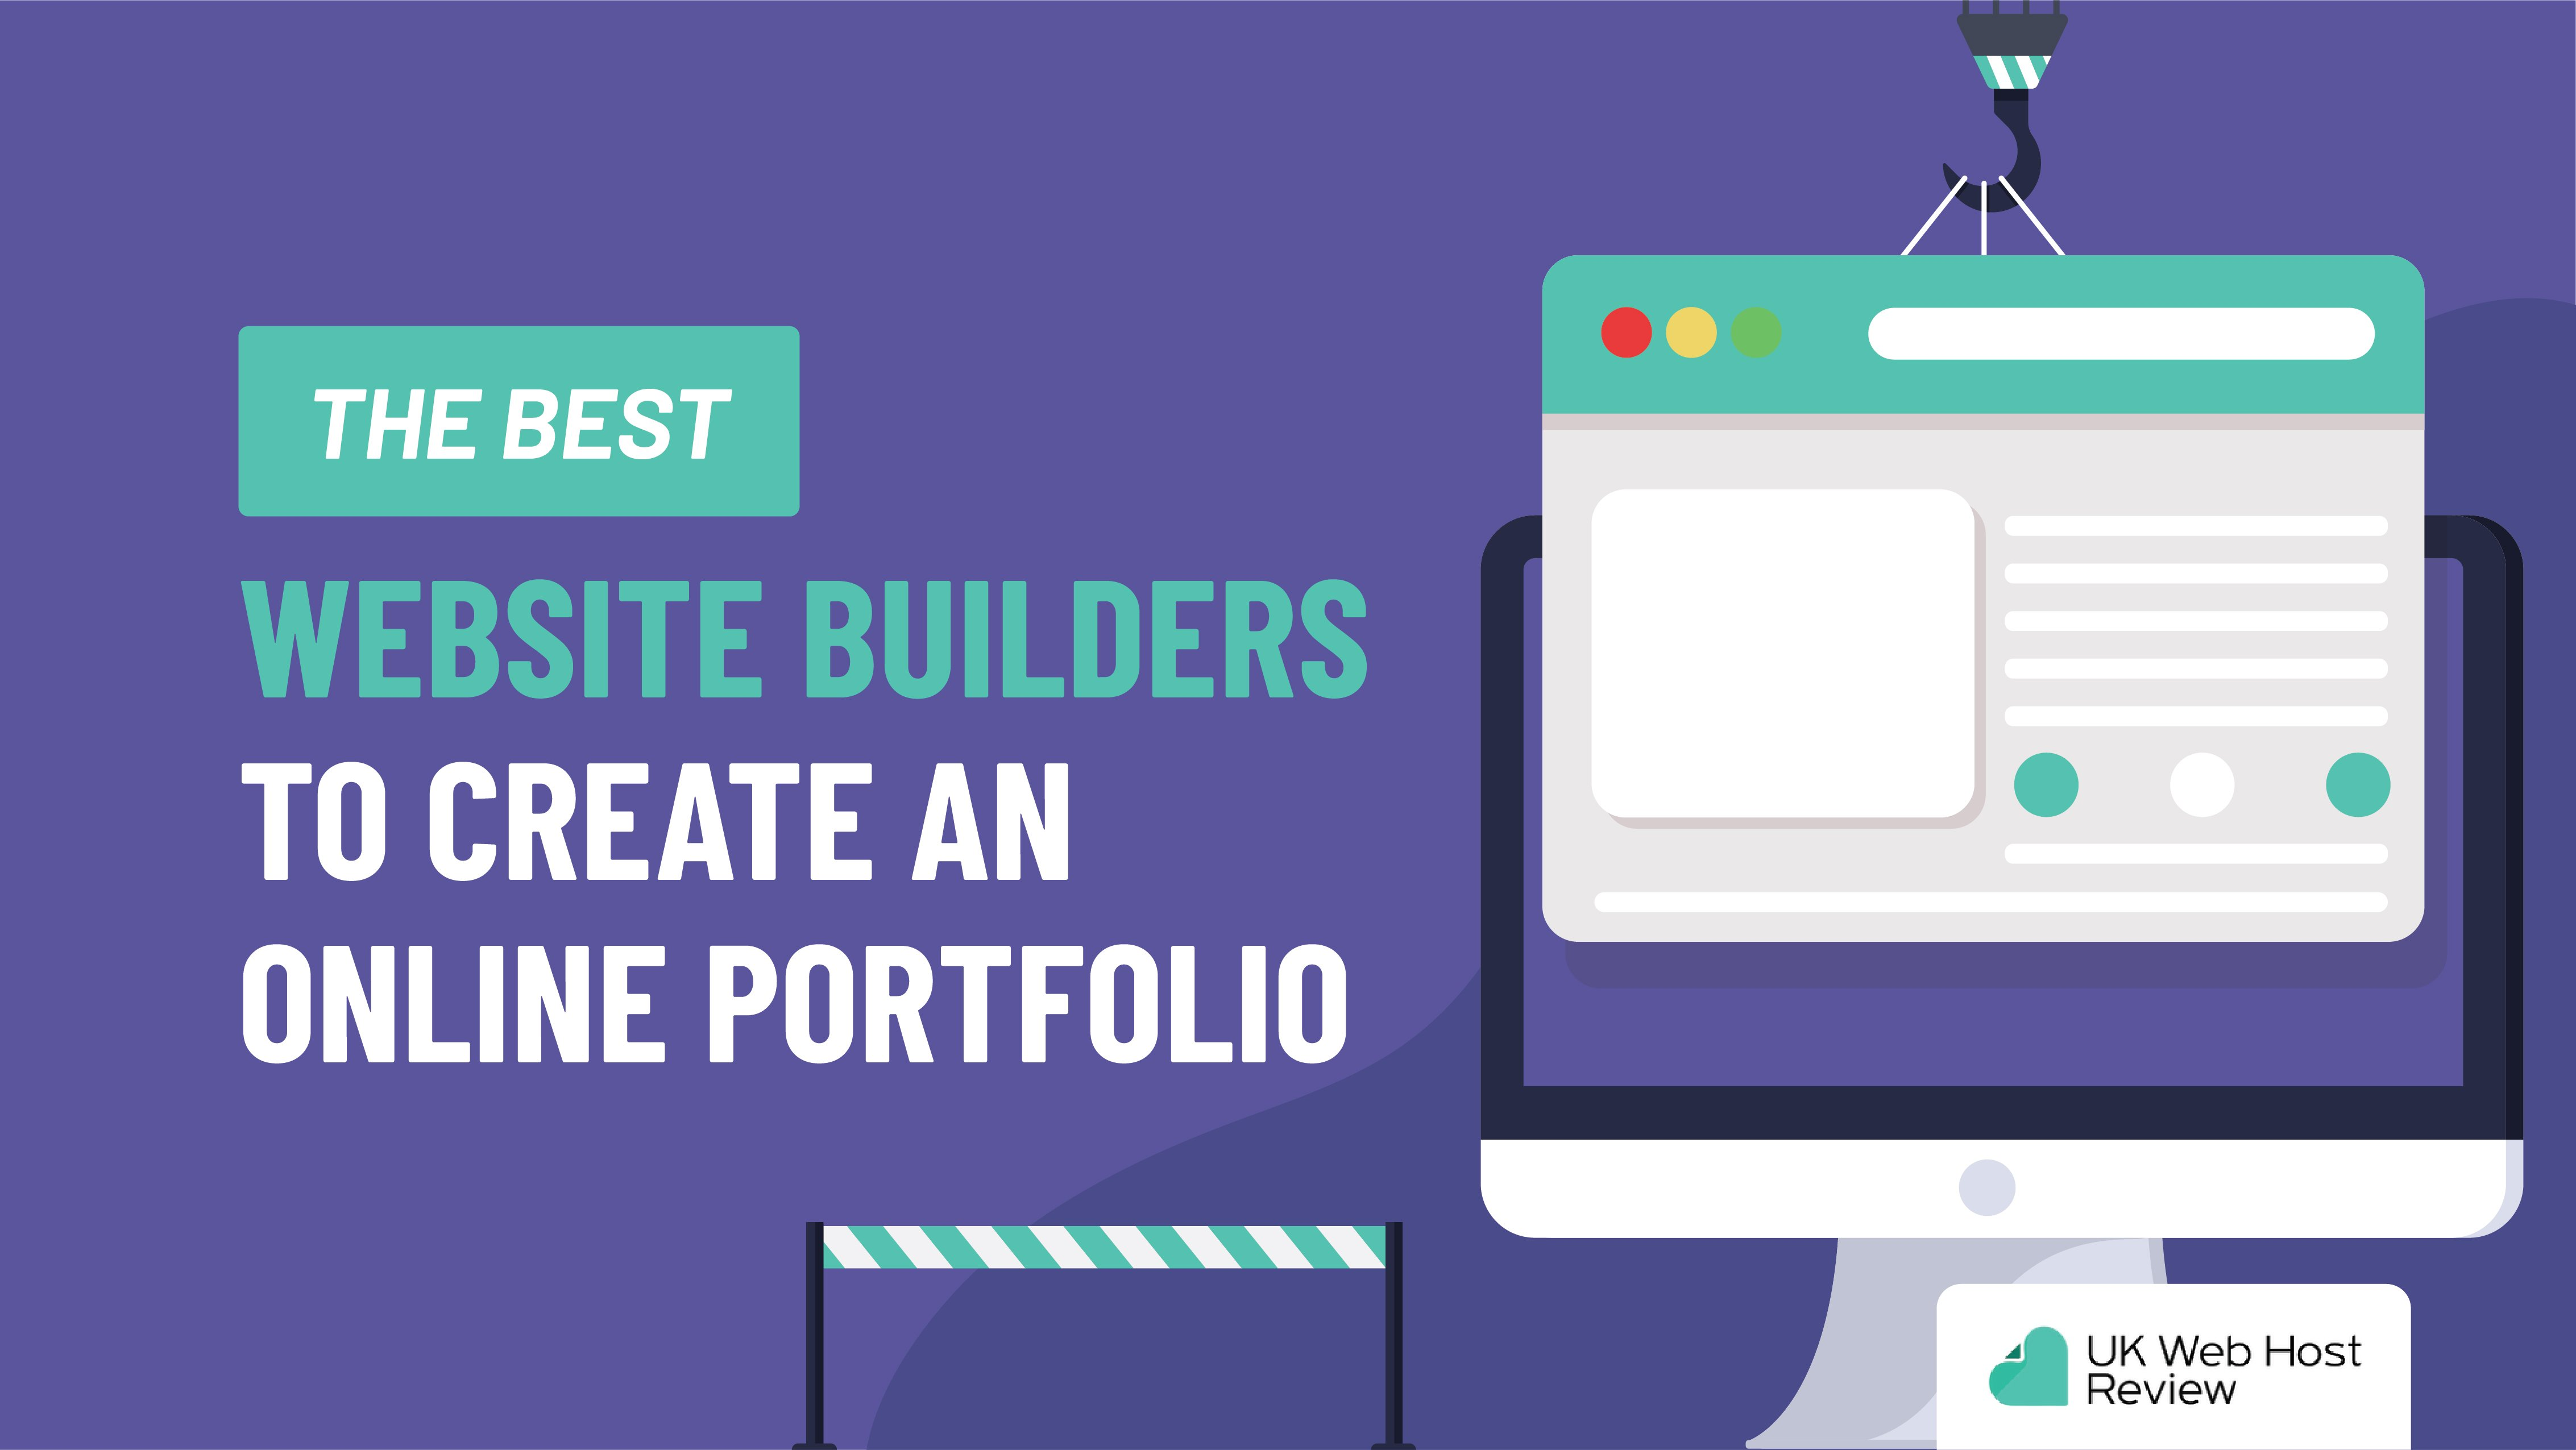 Best Website Builders to Create an Online Portfolio